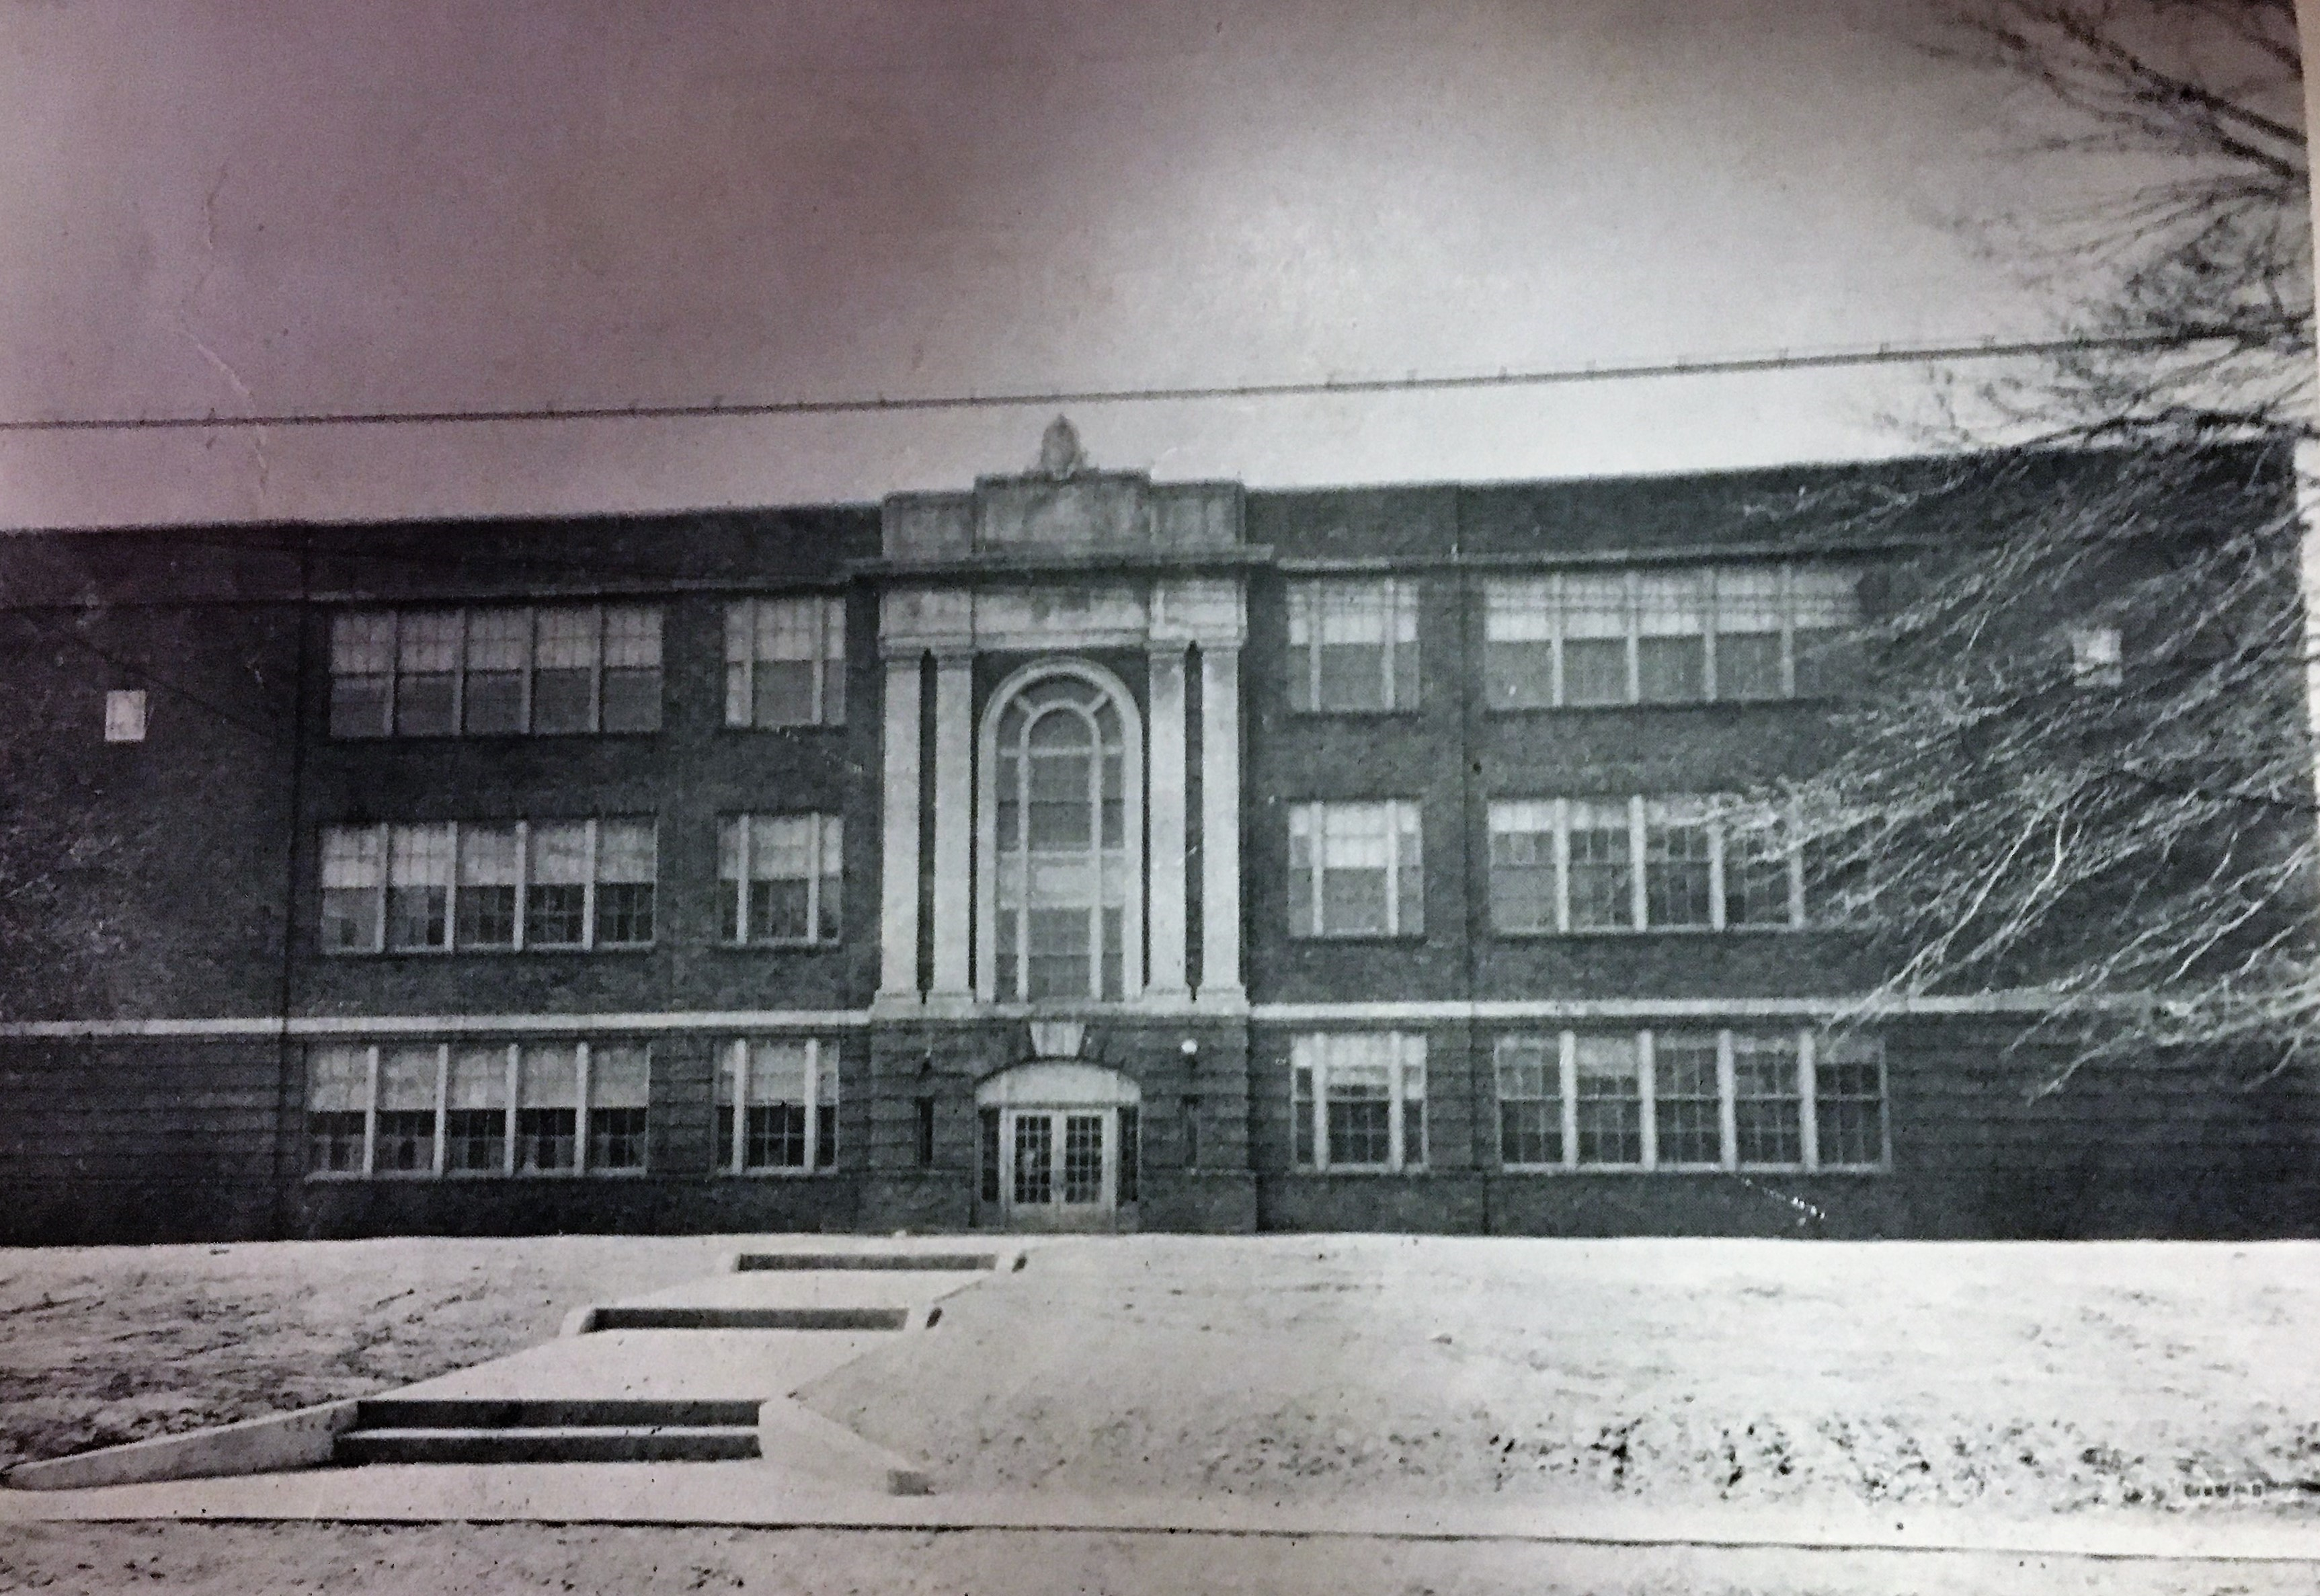 When the school building was originally built in 1923 it included a small stone object on top of the roof, which was later removed. Courtesy of the Ceredo Historical Society Museum.